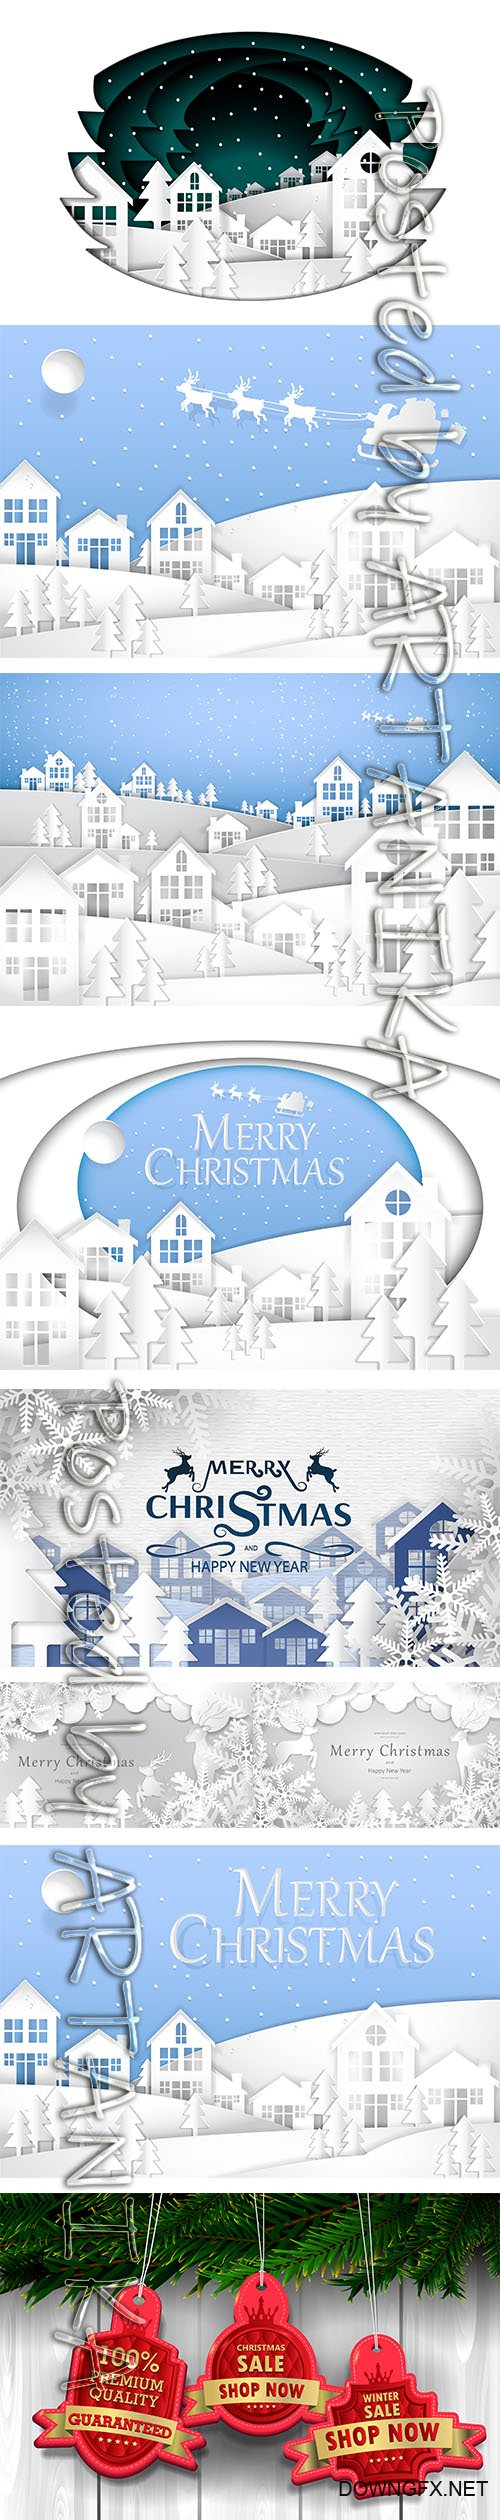 Paper Art Set - Merry Christmas and New Year 2020 Vector Illustrations